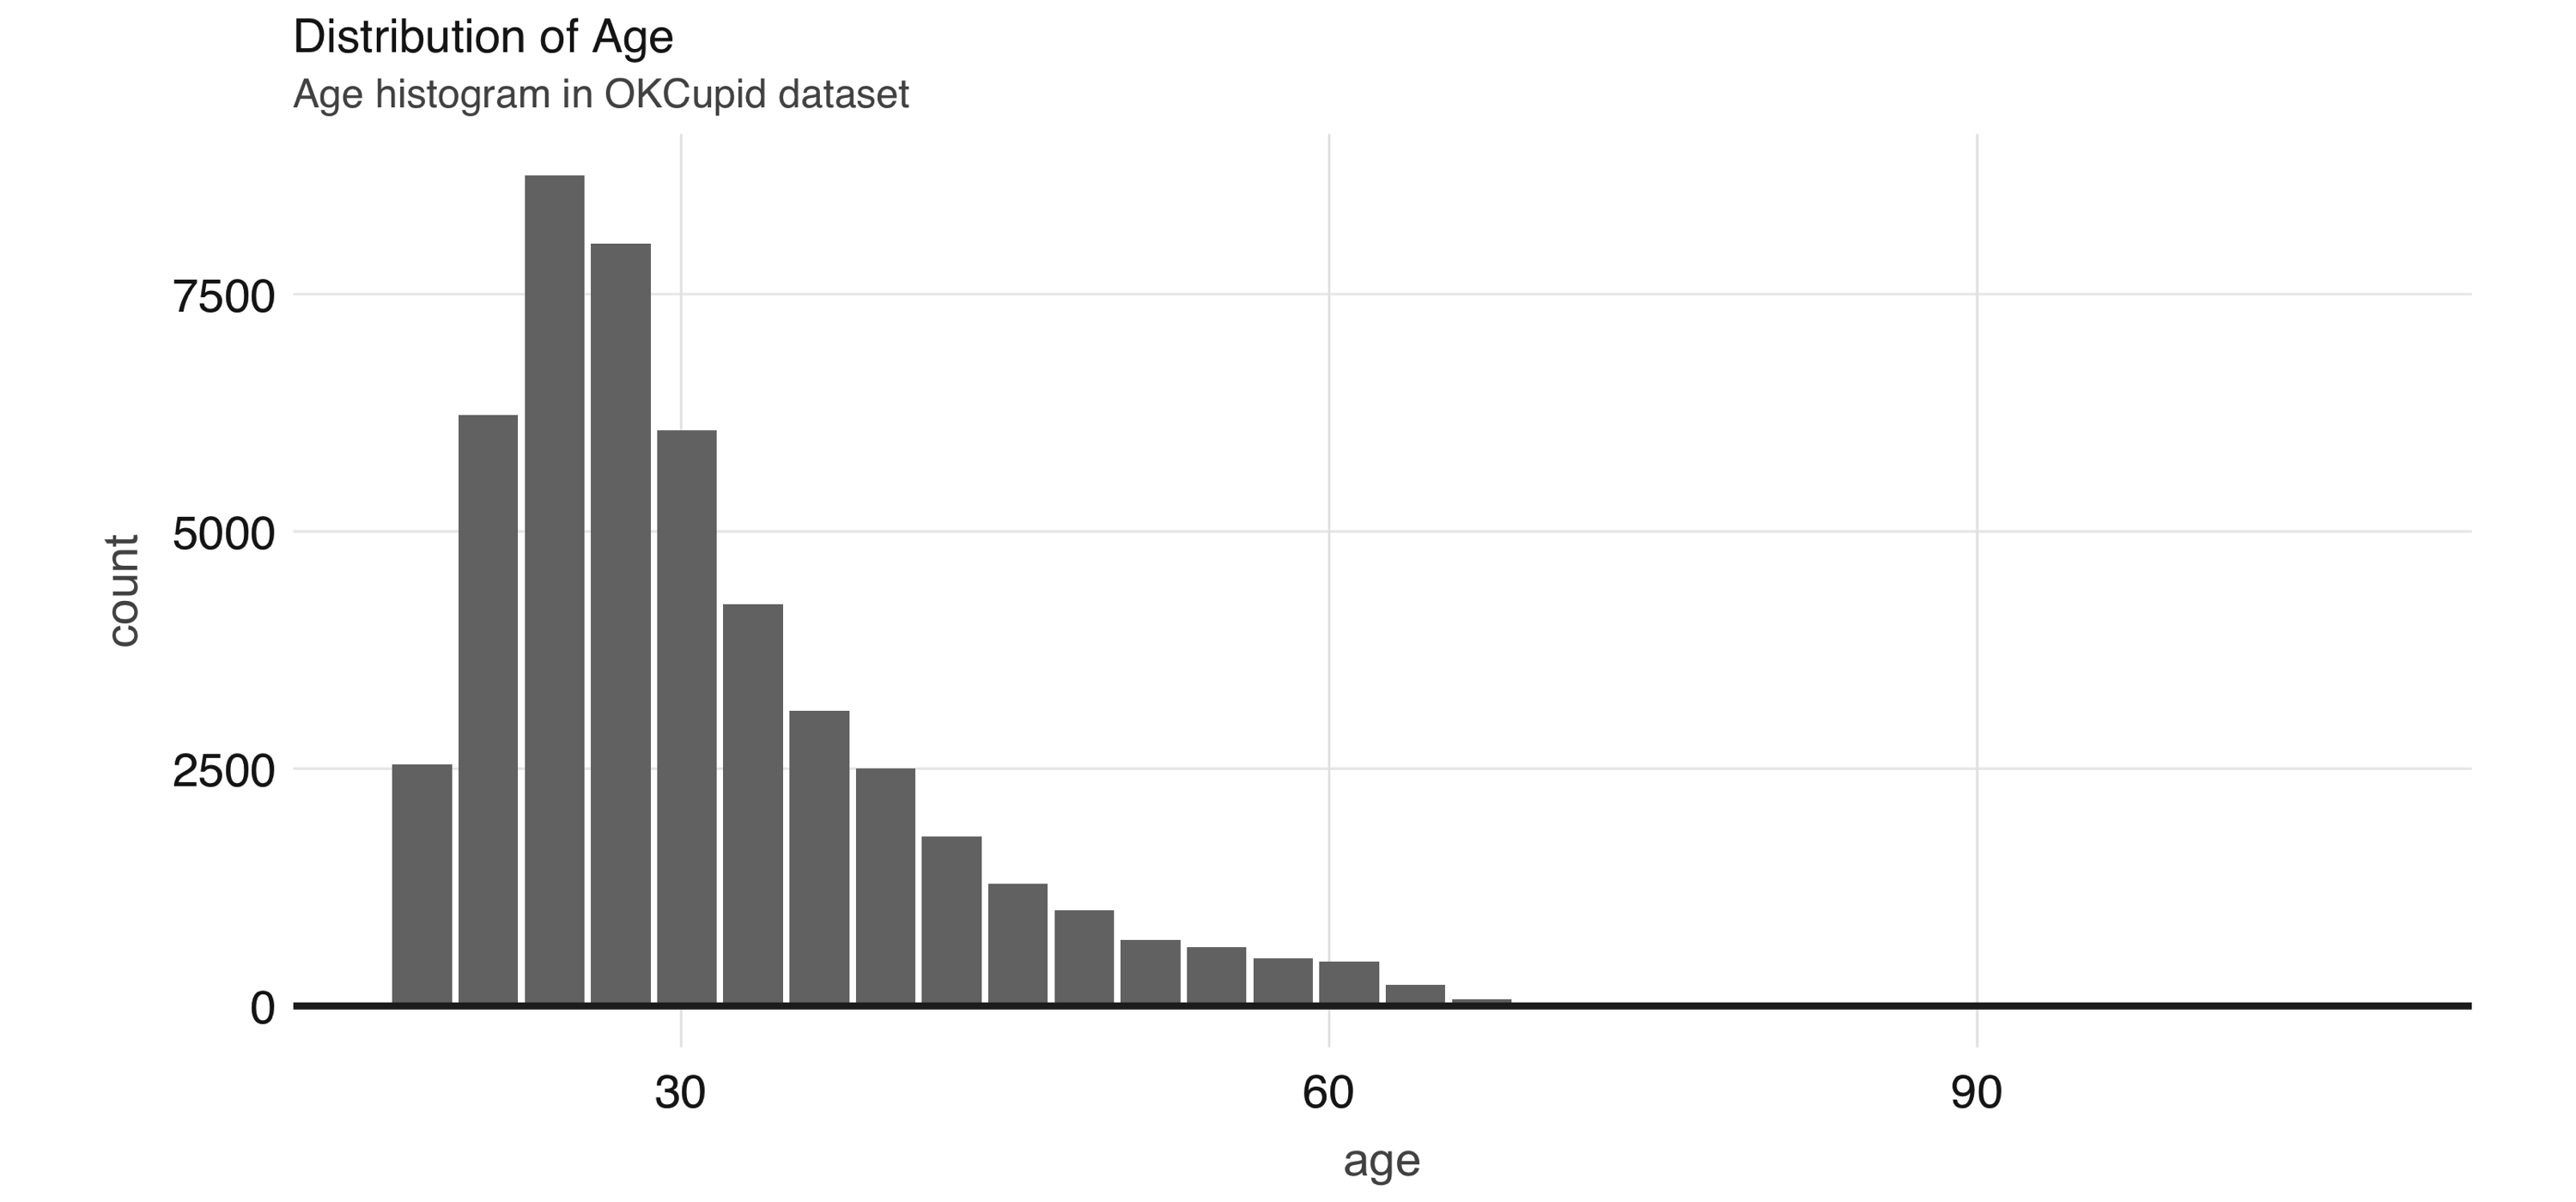 Distribution of age